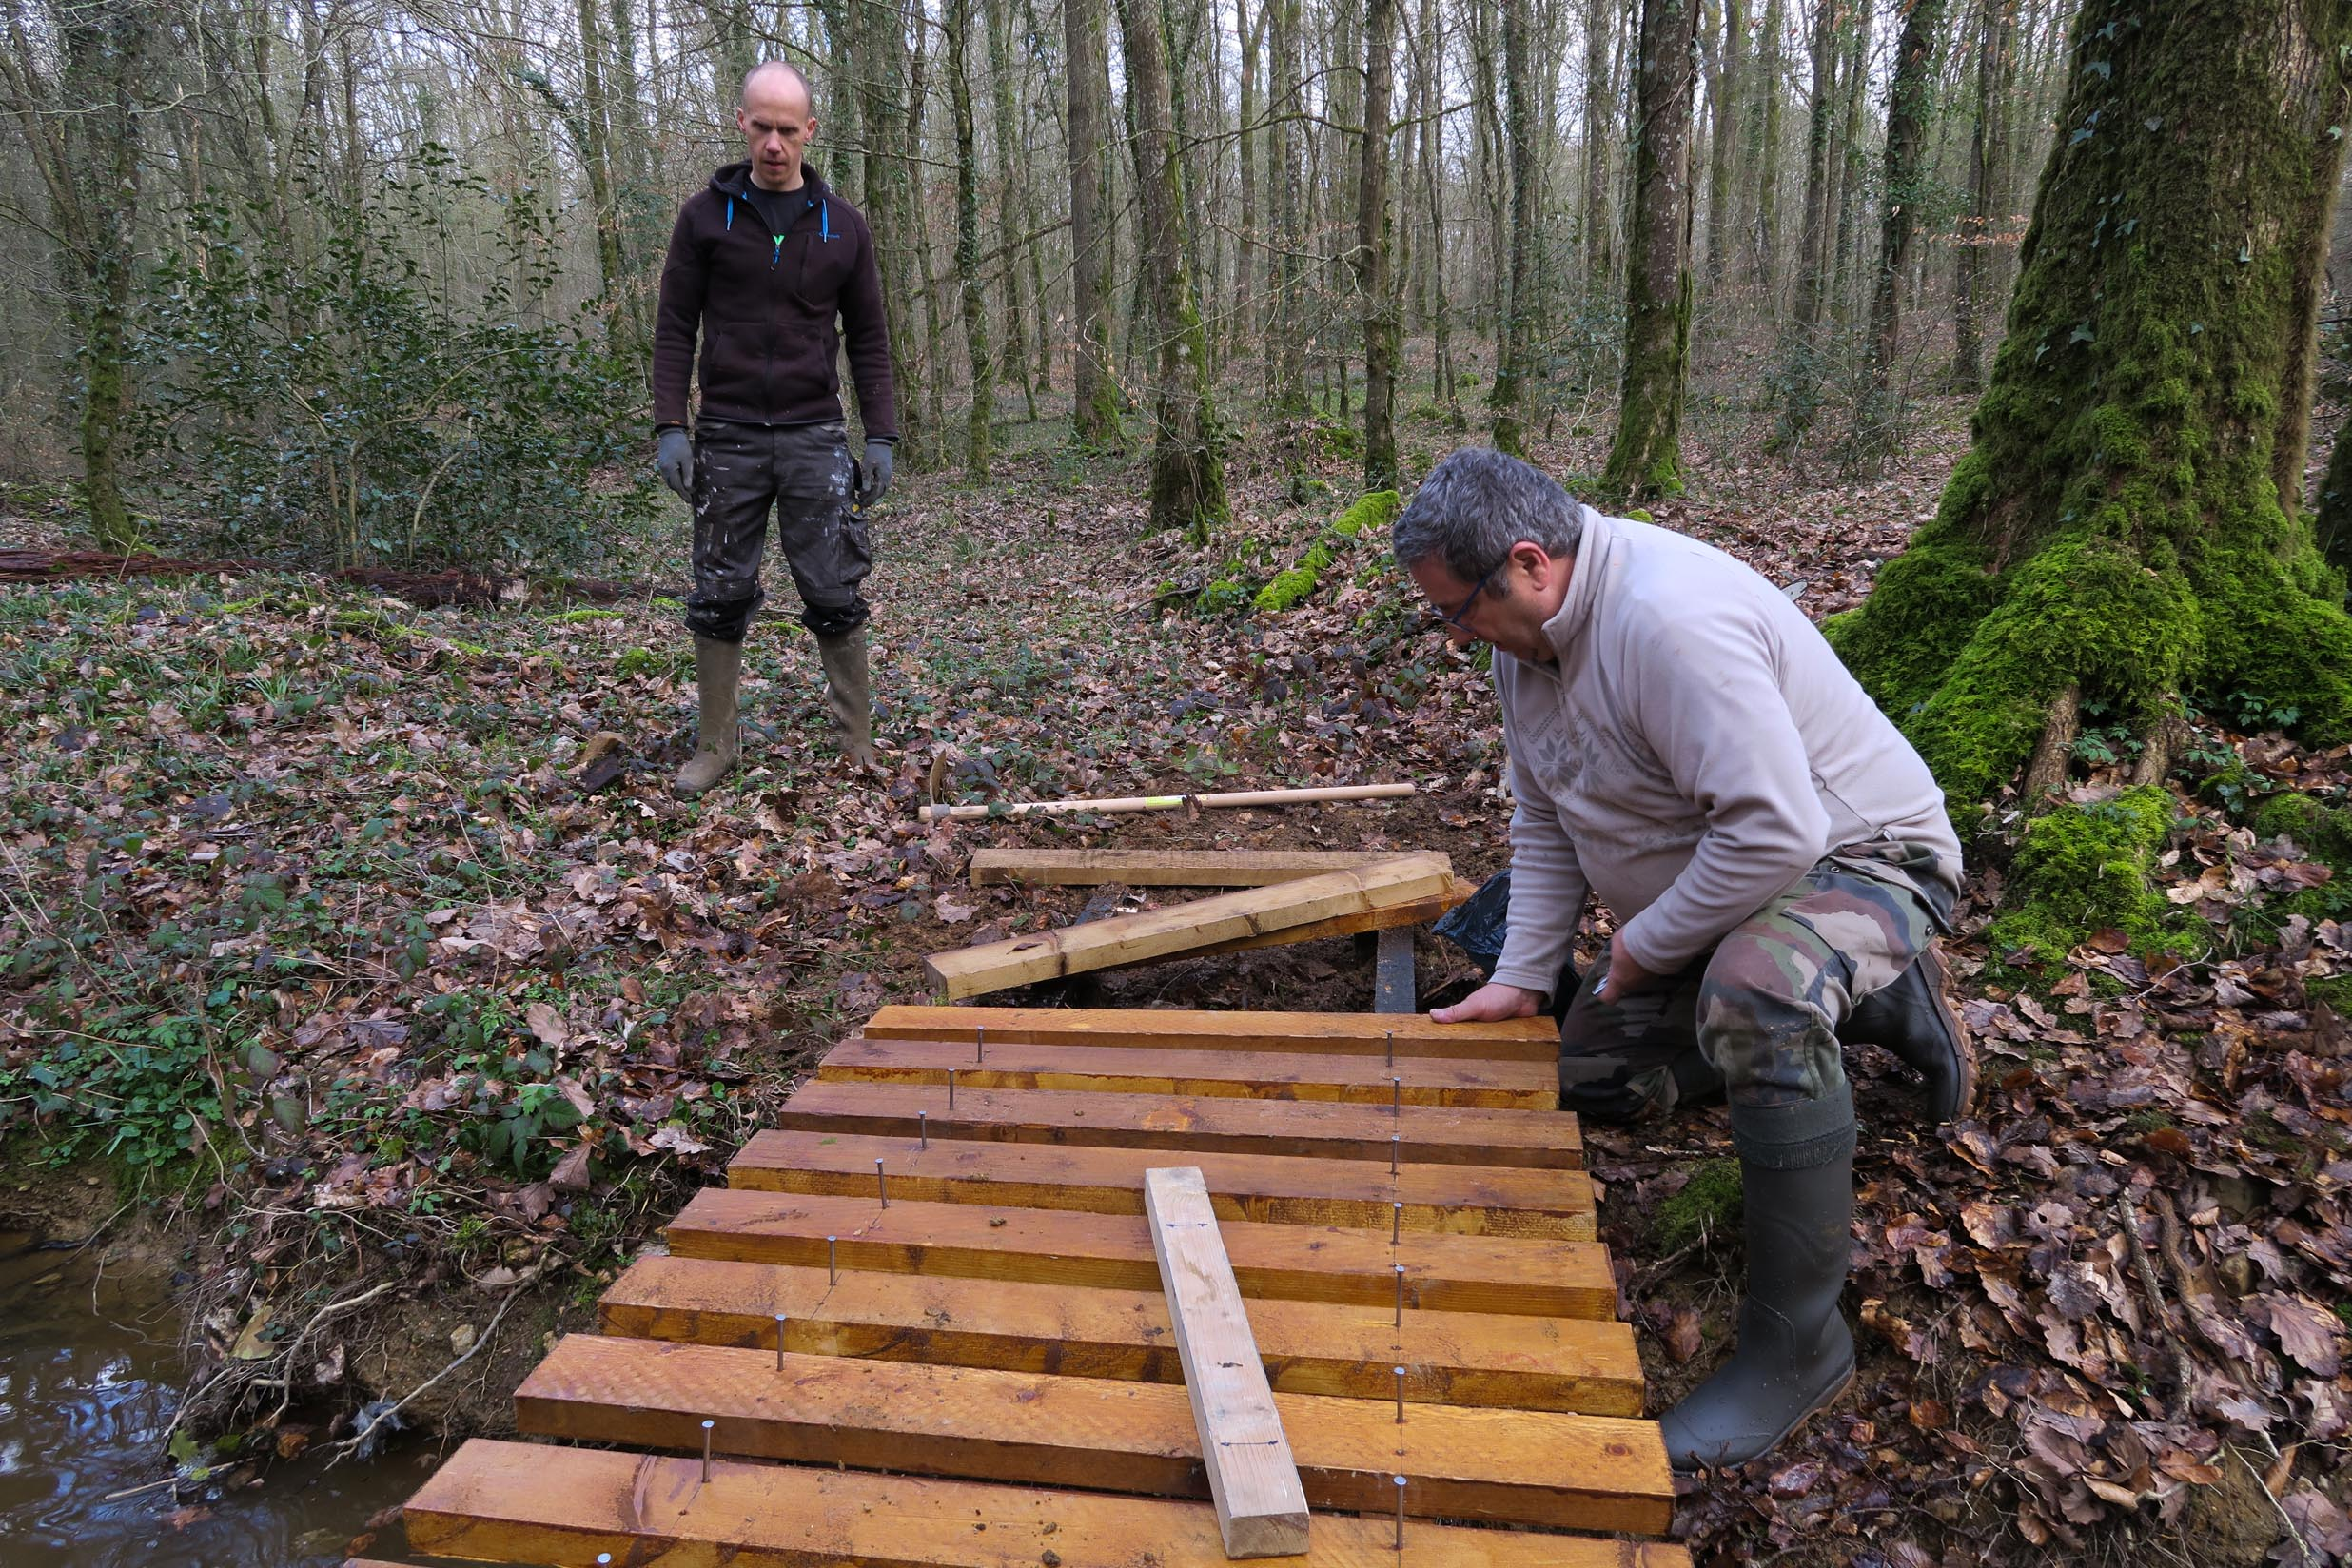 2018-03-10 Fabrication passerelle forêt Rennes-5